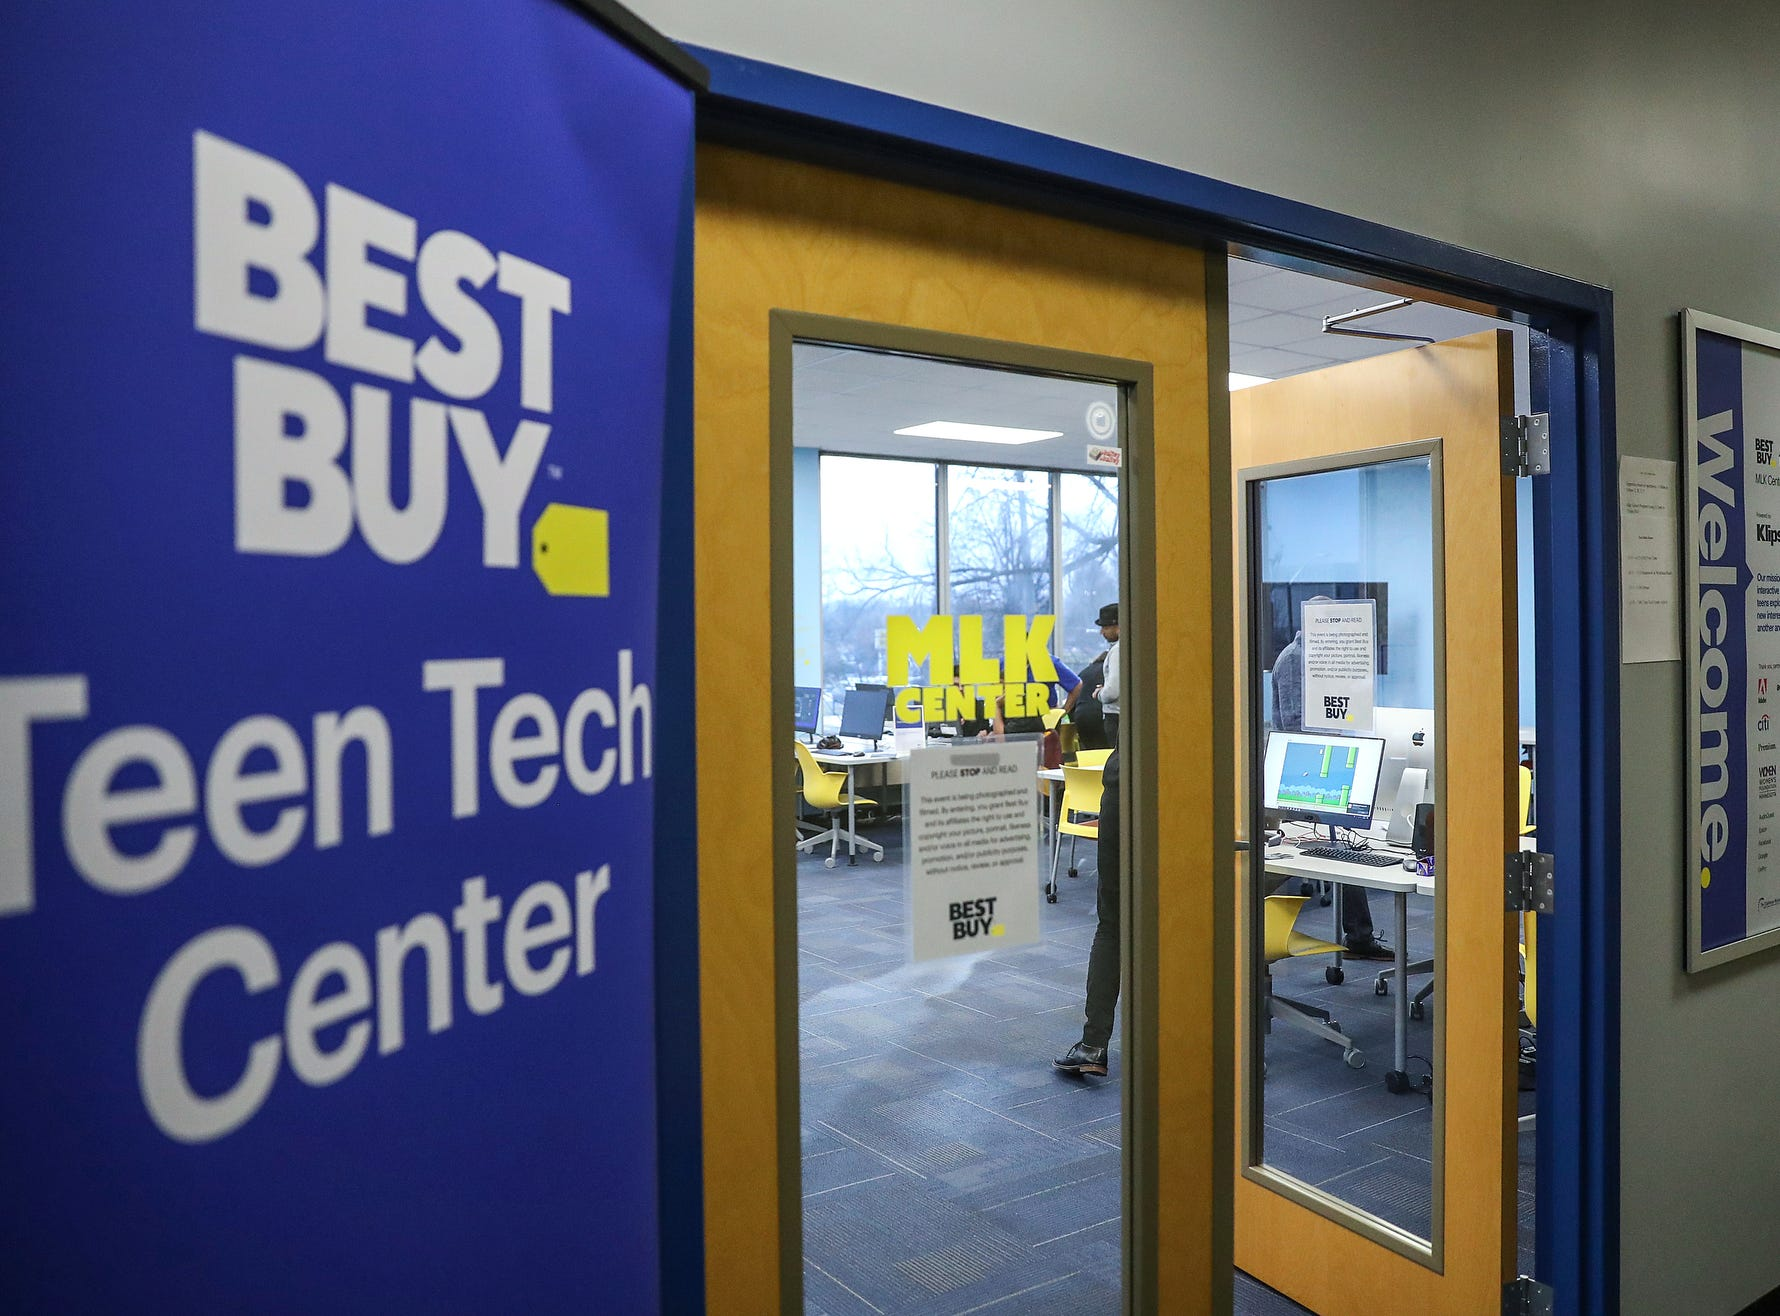 The Best Buy Teen Tech Center at the MLK Community Center in Indianapolis, Tuesday, Jan. 29, 2019.